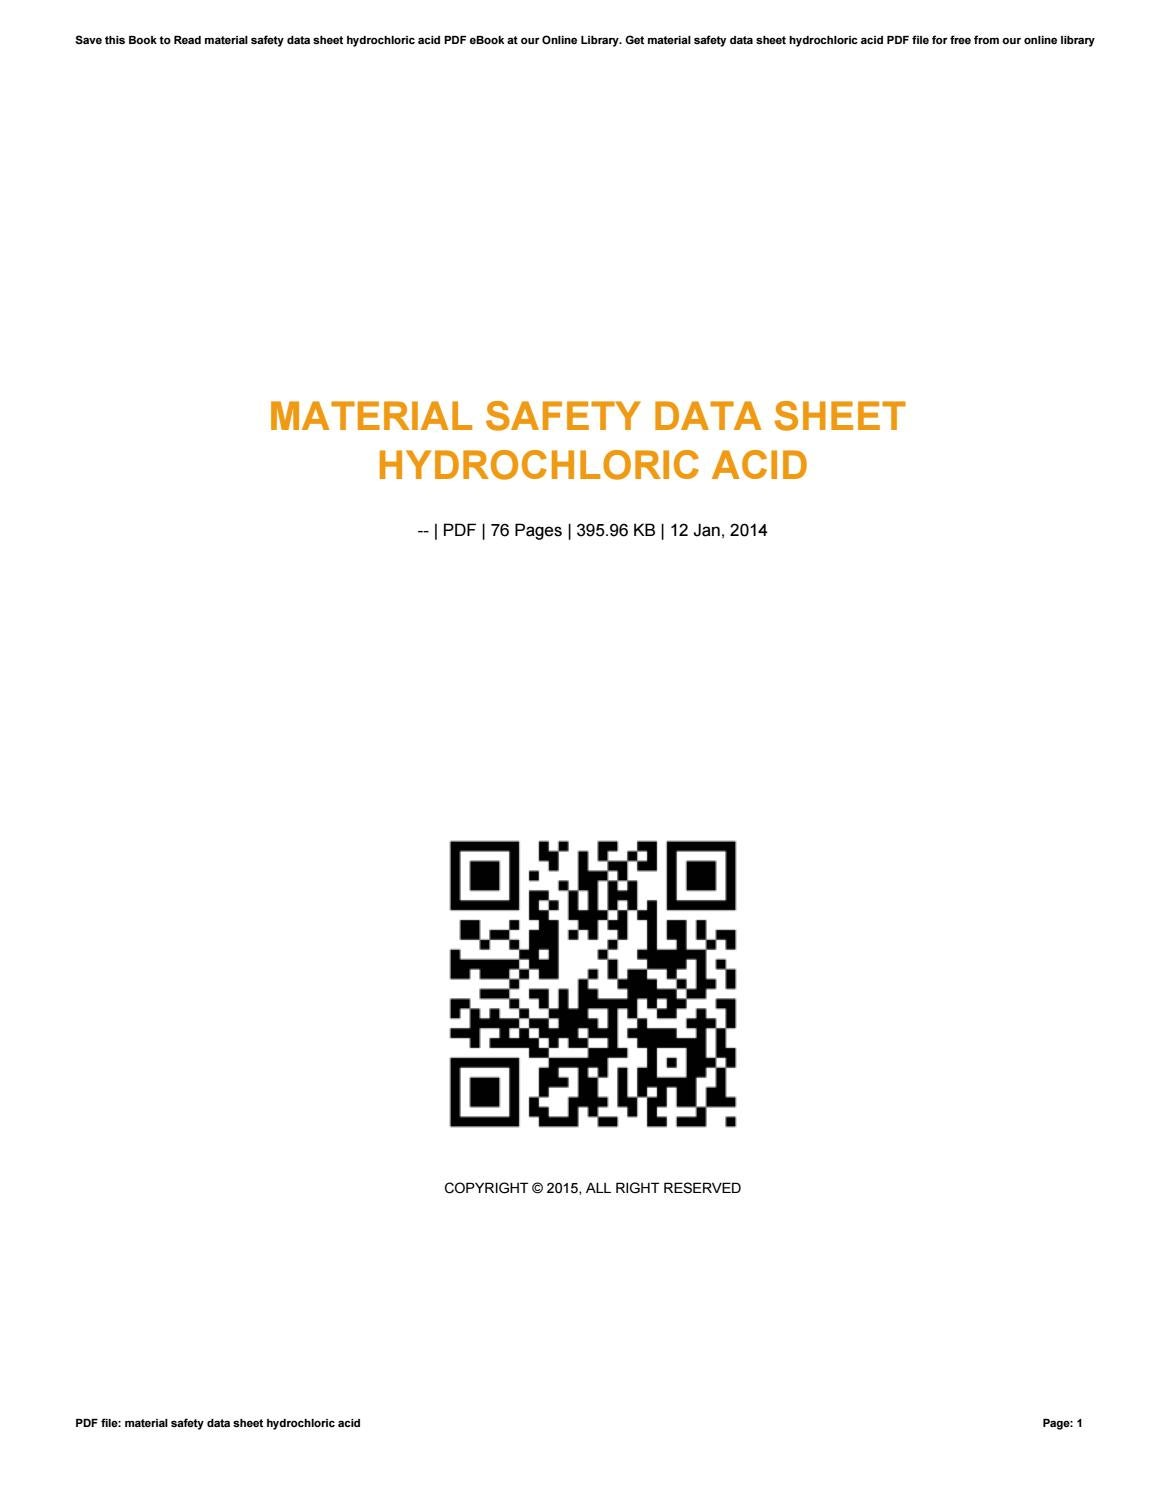 Material safety data sheet hydrochloric acid by ax80mail97 - issuu